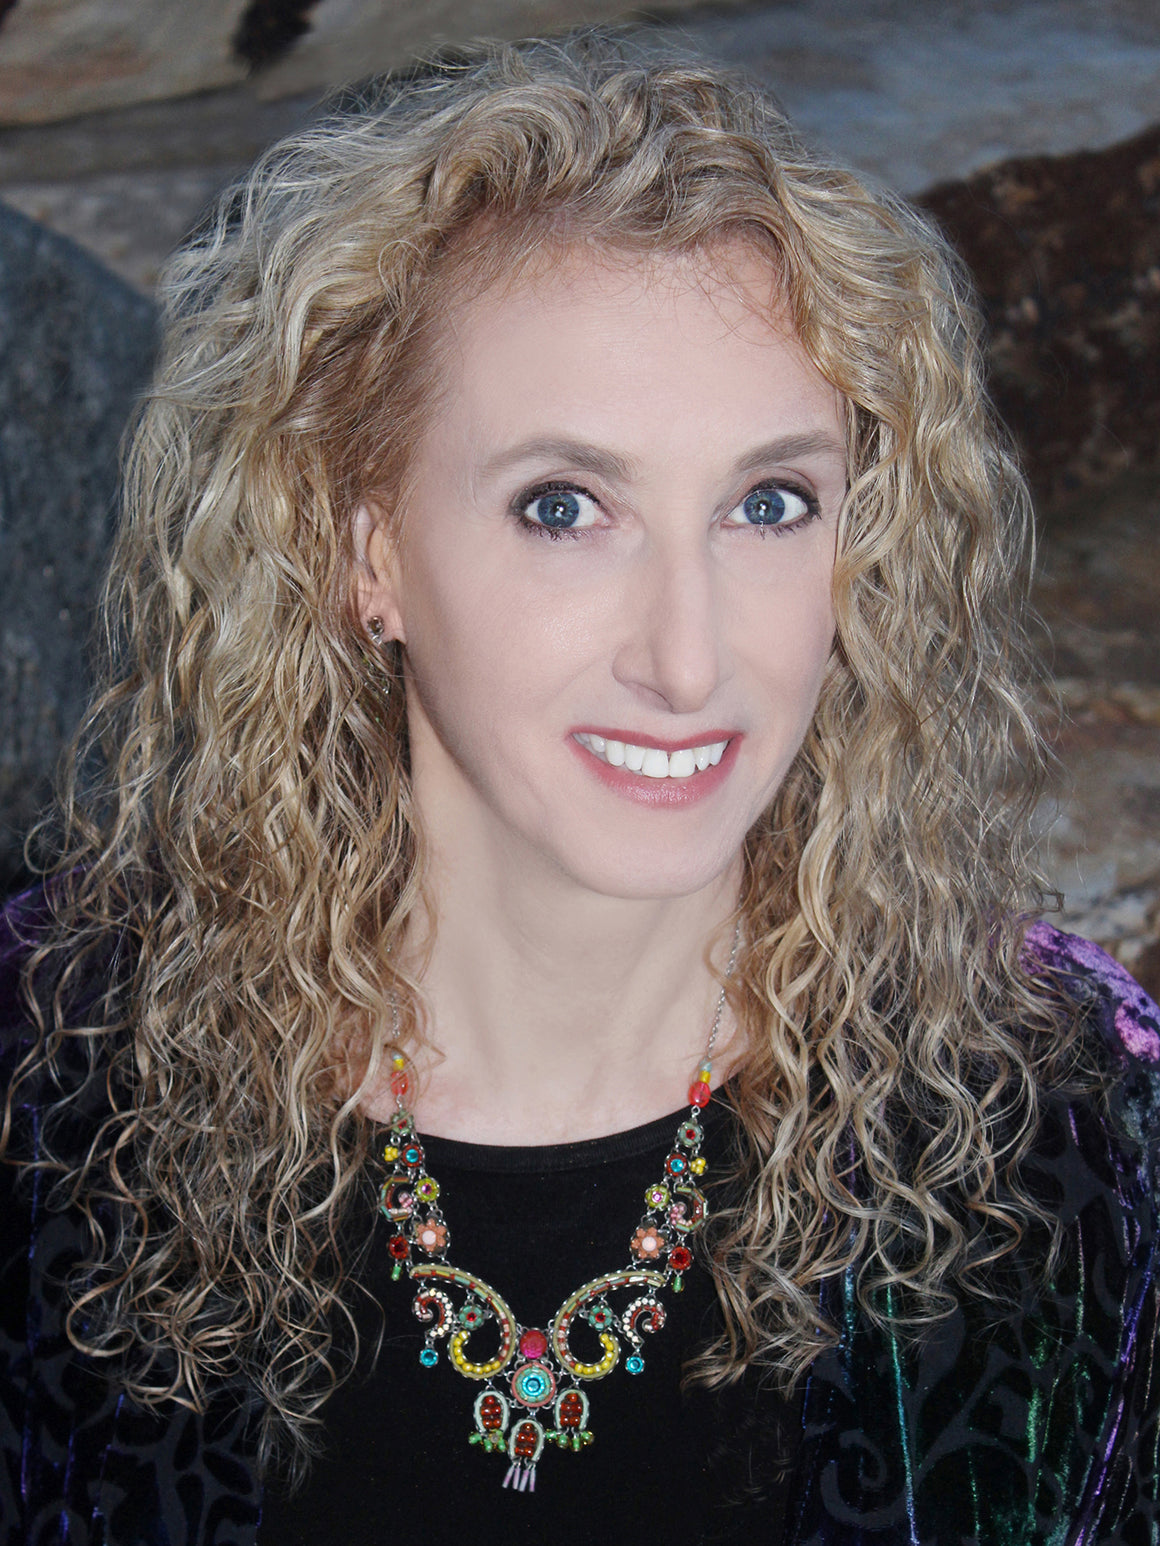 February 17, 2018 - Saturday 10:30am-5pm - Contacting the Guru Within: Open, Trust, and Test Your Inner Guidance - with Susan Shumsky